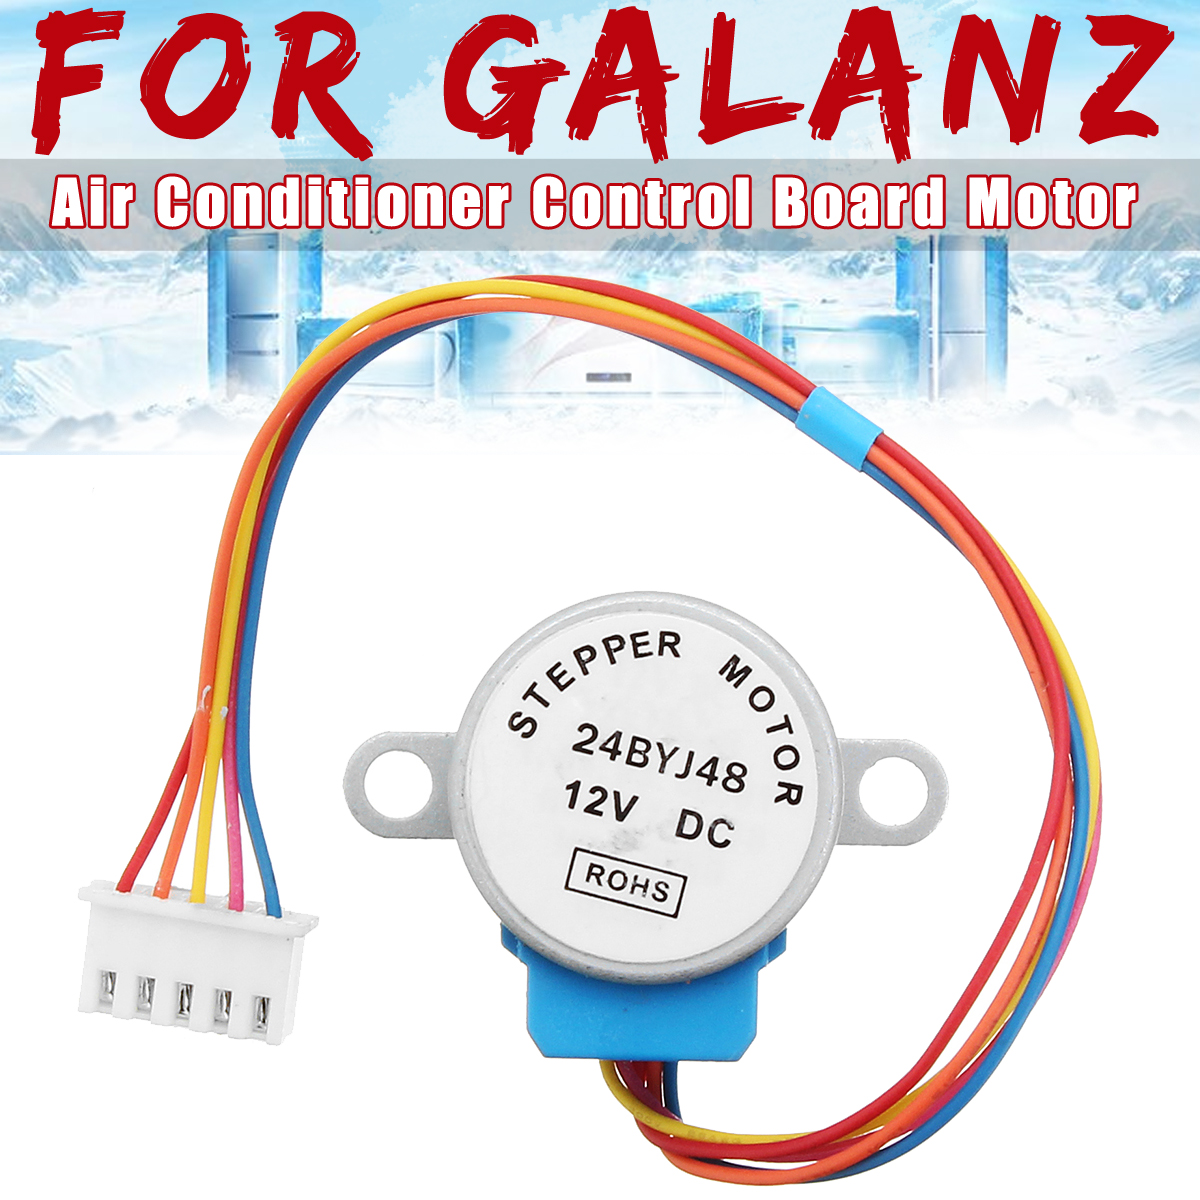 GAL12A BD Air Conditioner Control Board Motor Outboard Motor Metal Air  Conditioner Parts For GALANZ-in Air Conditioner Parts from Home Appliances  on ...